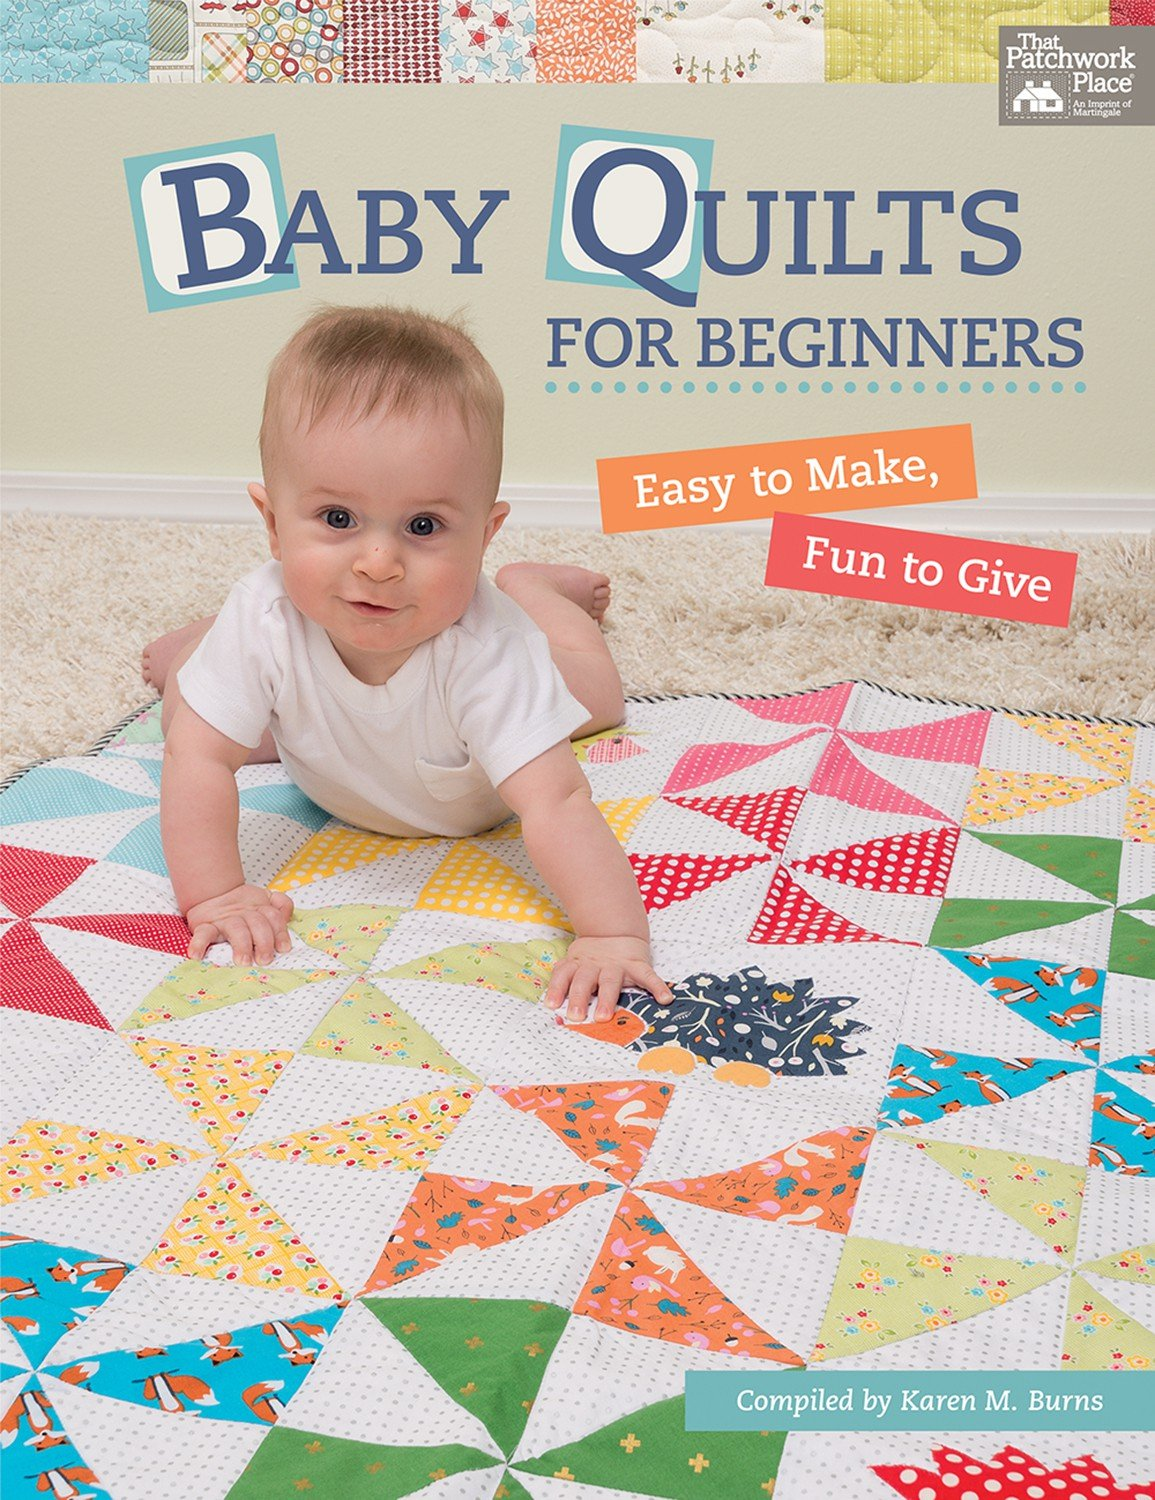 Baby Quilts for Beginners - B1422T